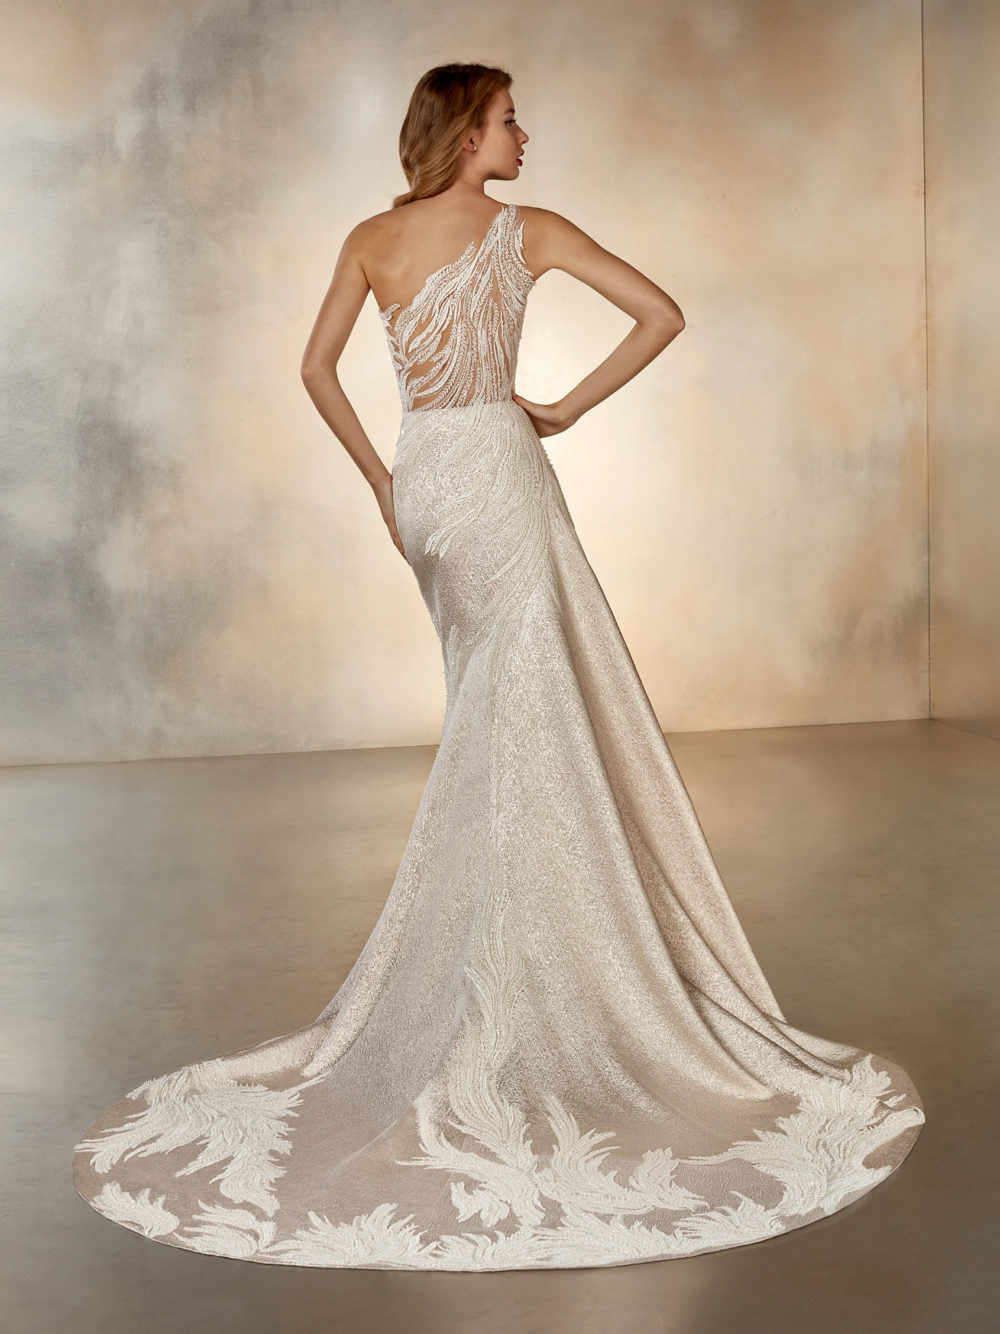 Pronovias Atelier Collection Moon Dance Wedding Gown Dress 2020 Full Back